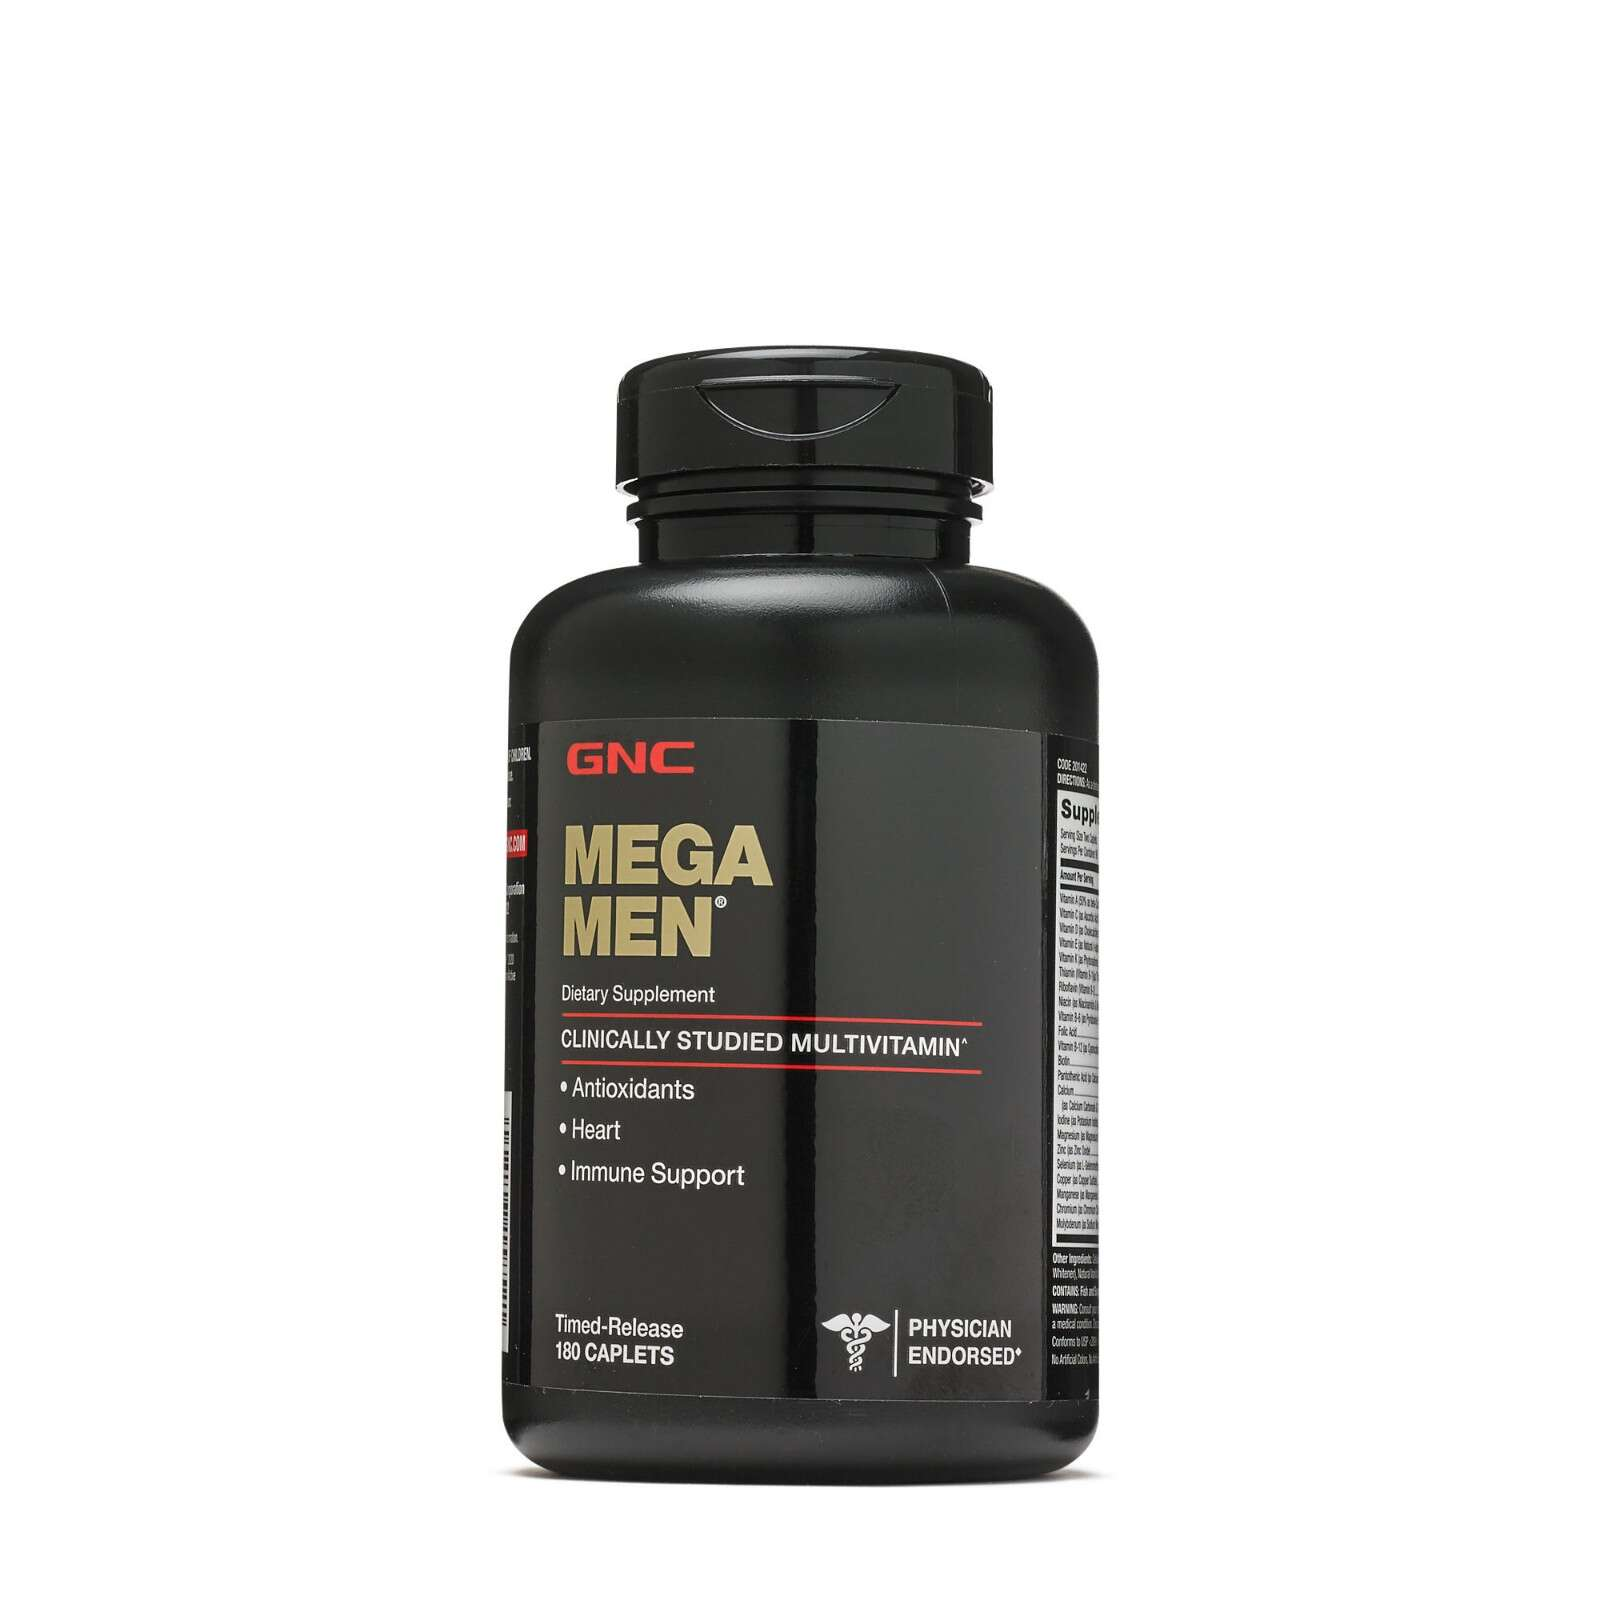 GNC MEGA MEN®